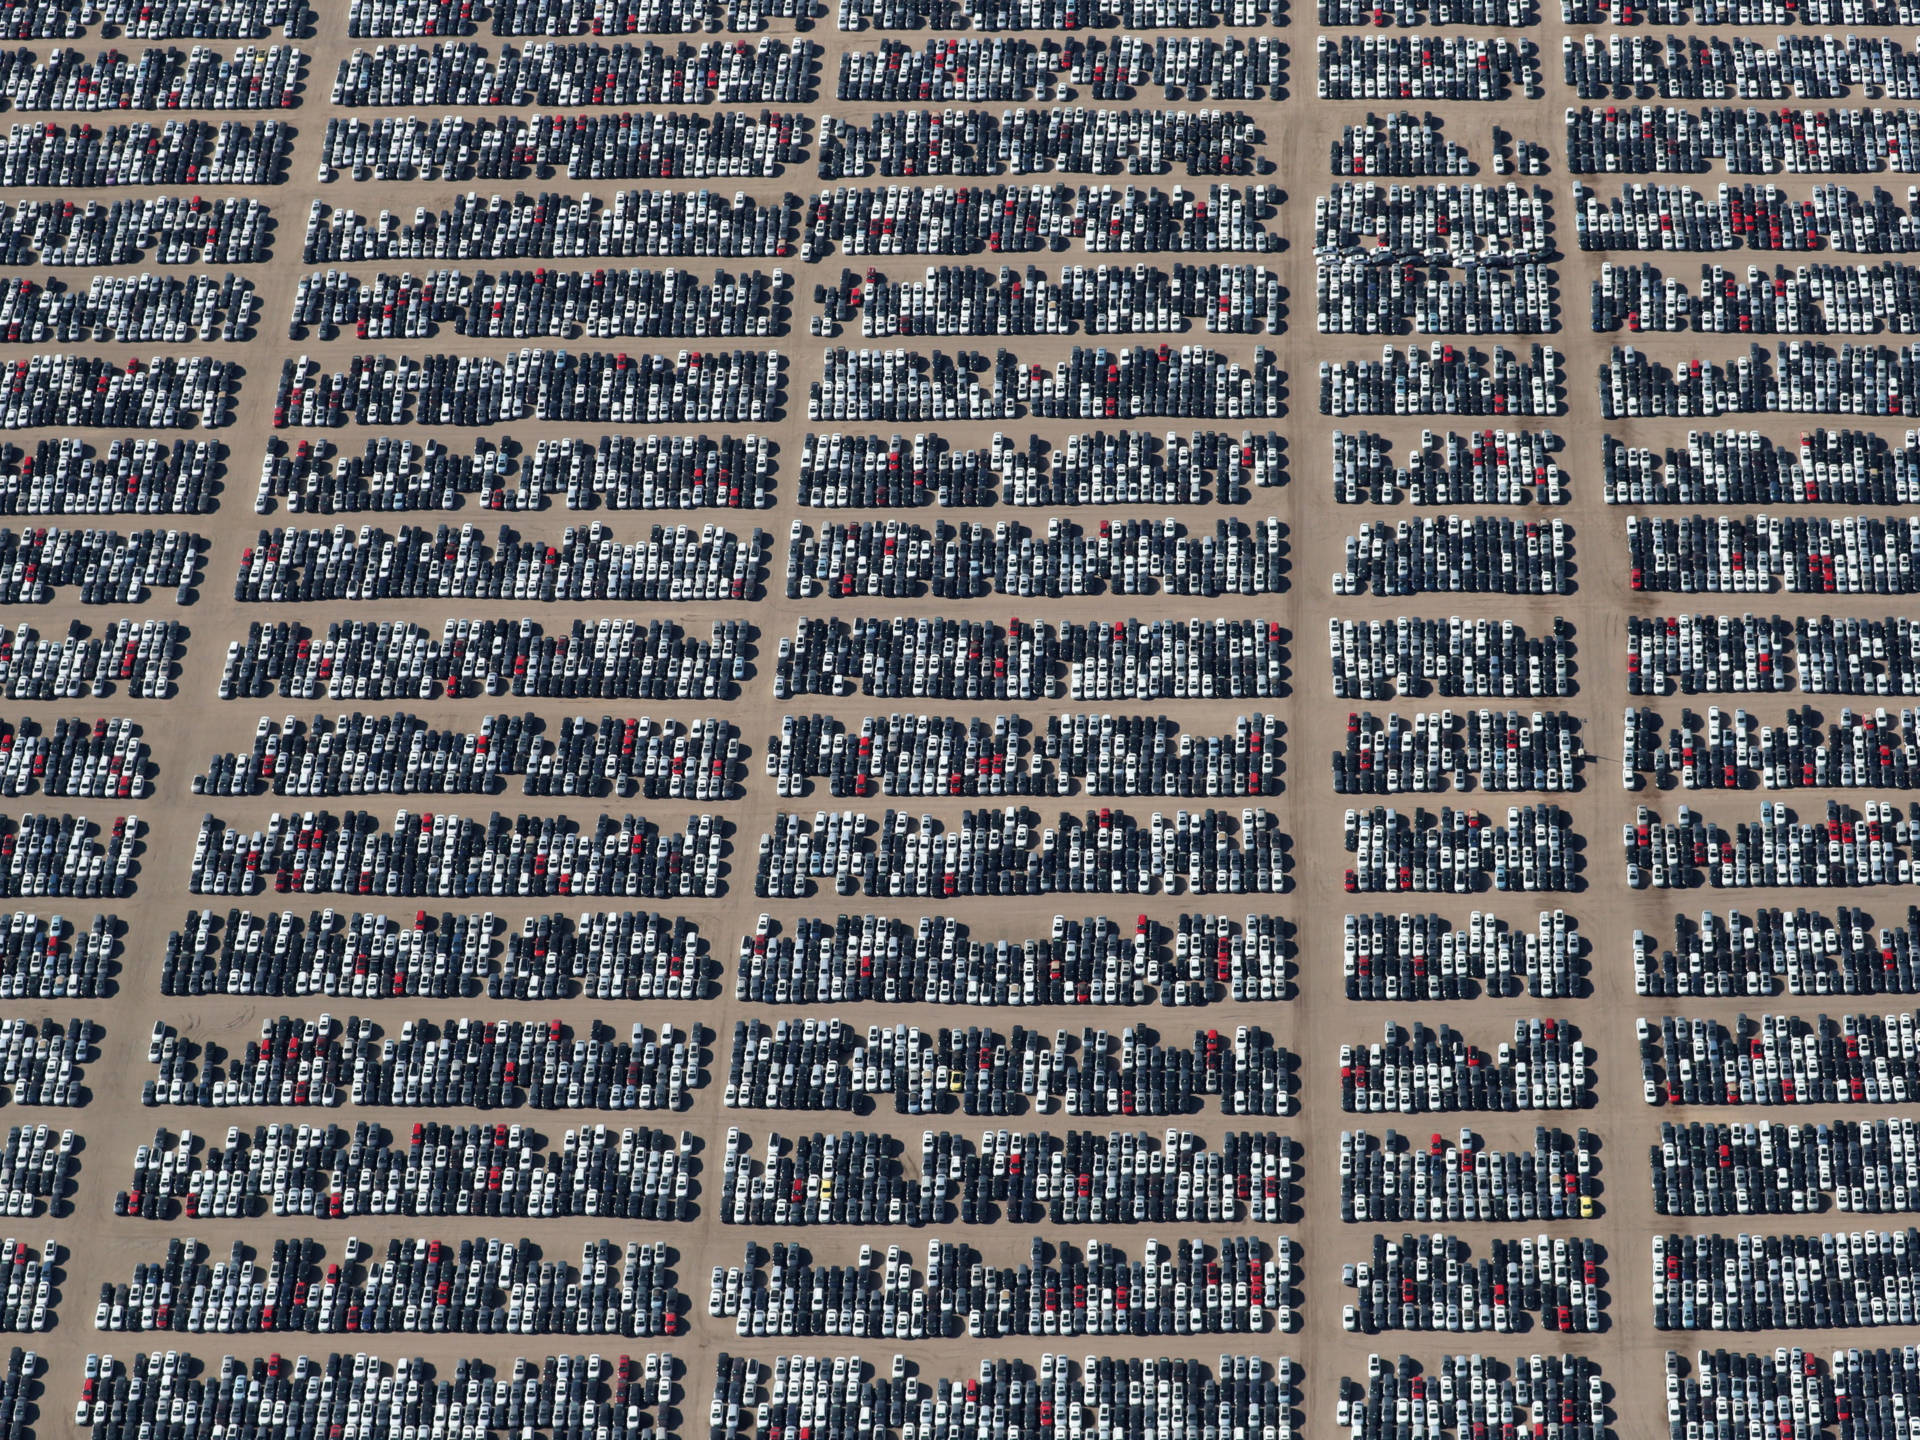 Reacquired Volkswagen and Audi diesel cars sit in a desert graveyard near Victorville, Calif., on Wednesday. Volkswagen AG has paid more than $7.4 billion to buy back about 350,000 vehicles, the automaker said in a recent court filing. Lucy Nicholson/Reuters